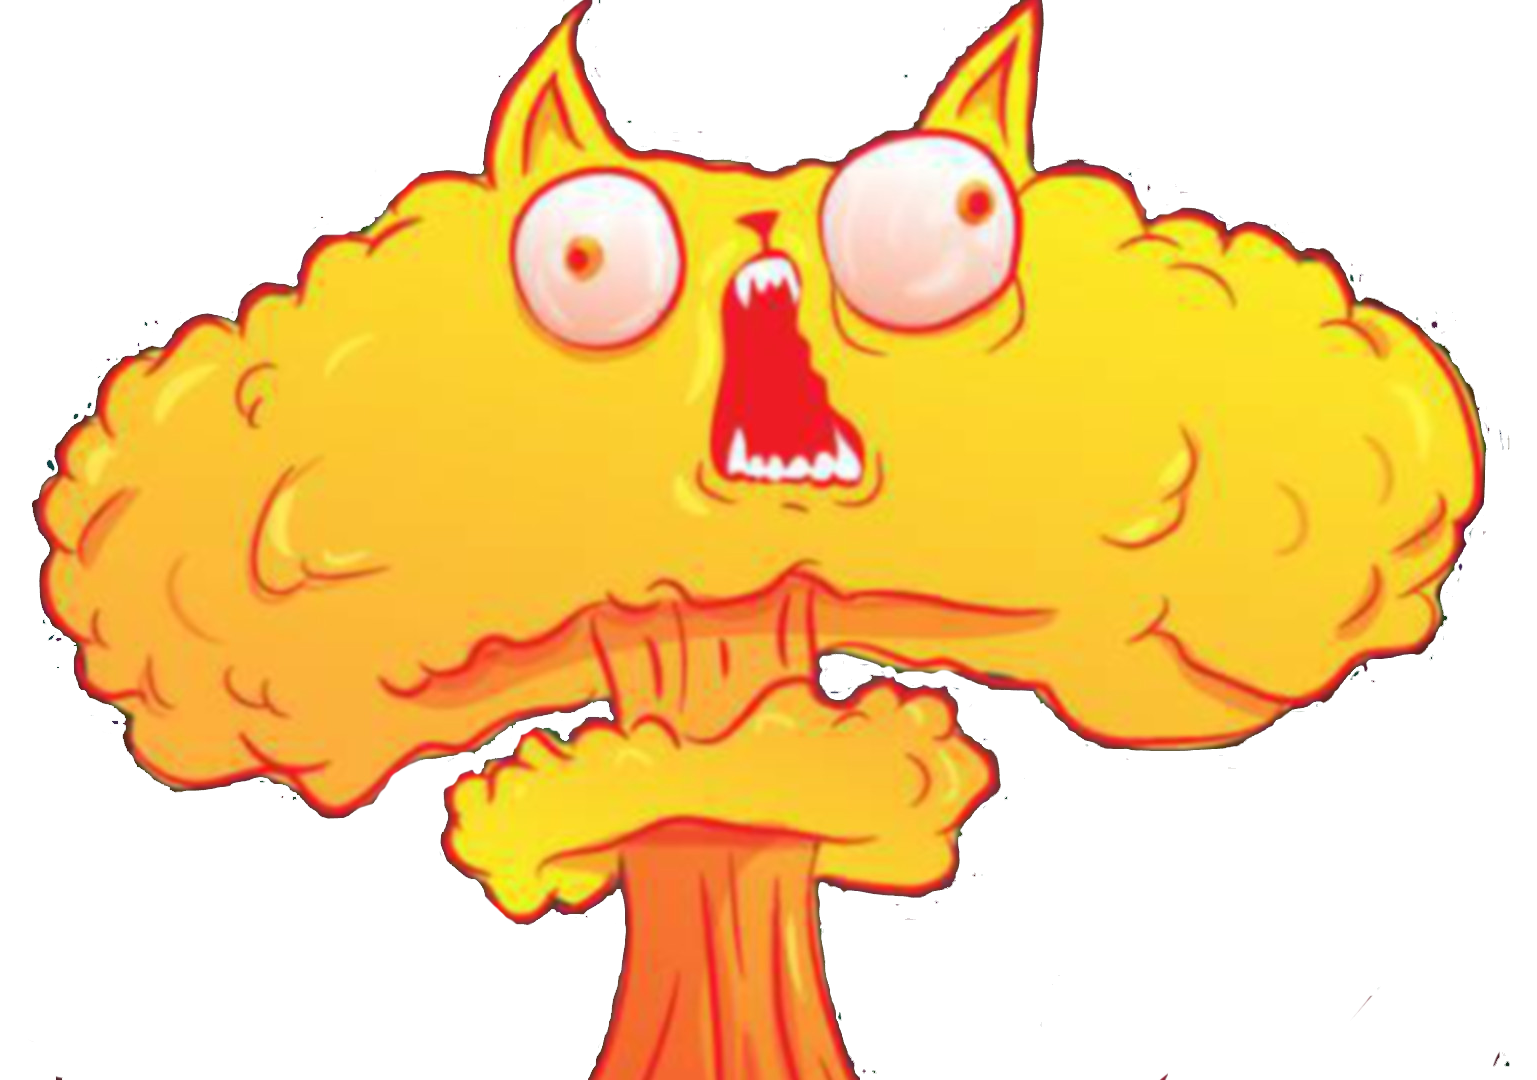 Explosion png cartoon. Kittens exploding right out